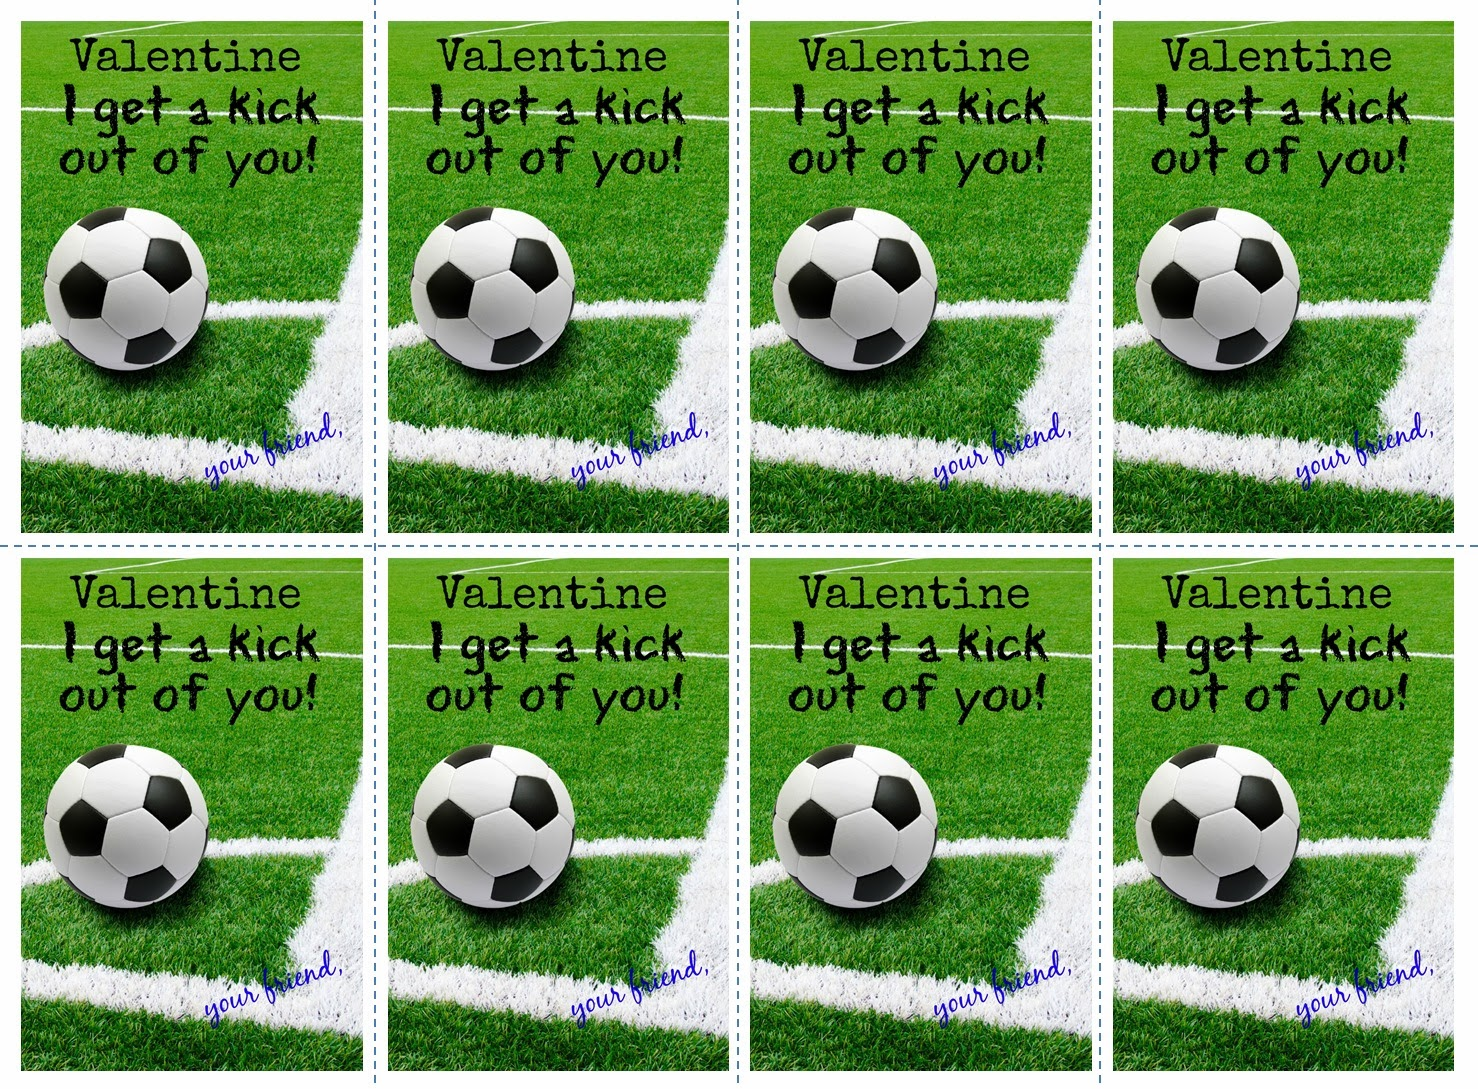 dating a soccer girl quotes 17 things you should know before dating a short girl what she lacks in height, she makes up for in personality.